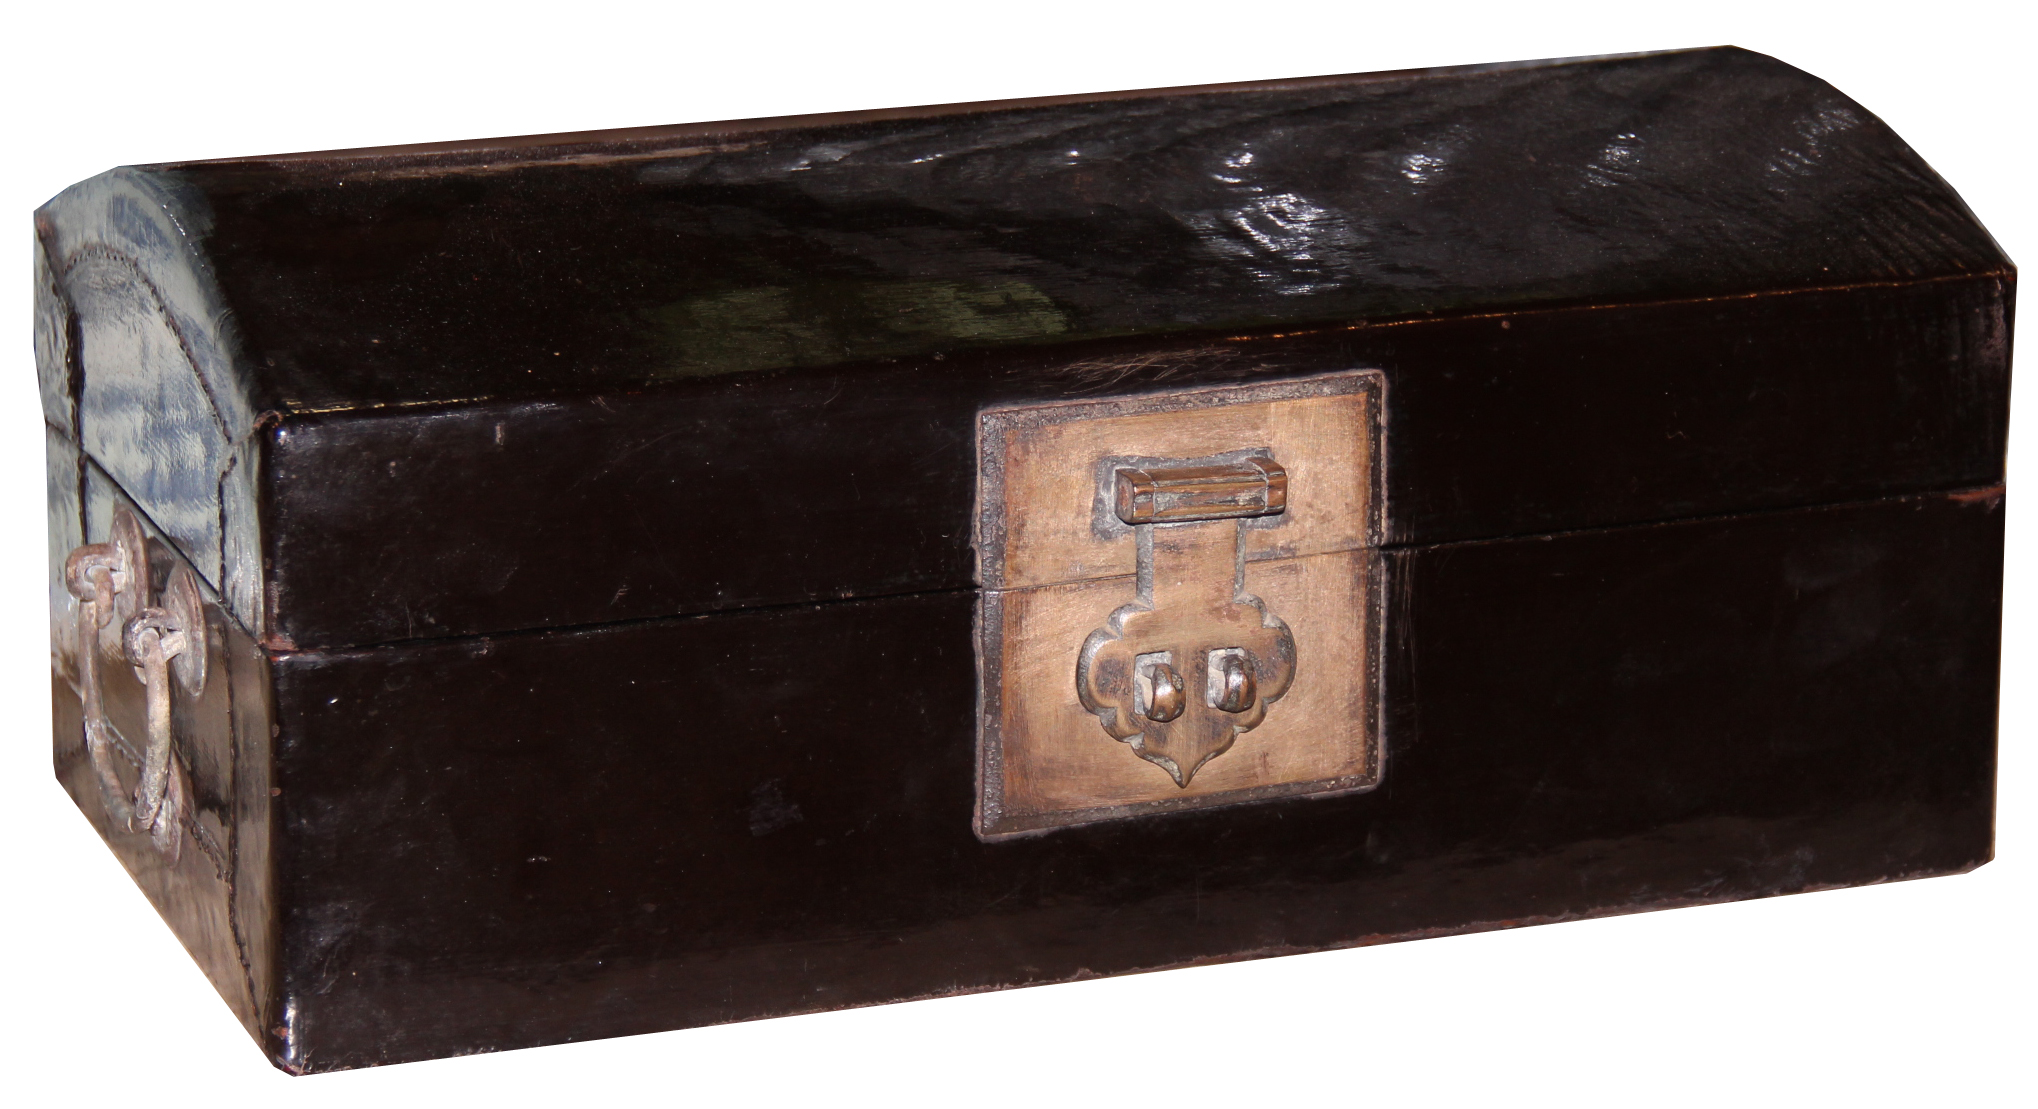 A 19th Century Chinese Black Lacquered Pigskin on Wood Valuables Box 4488